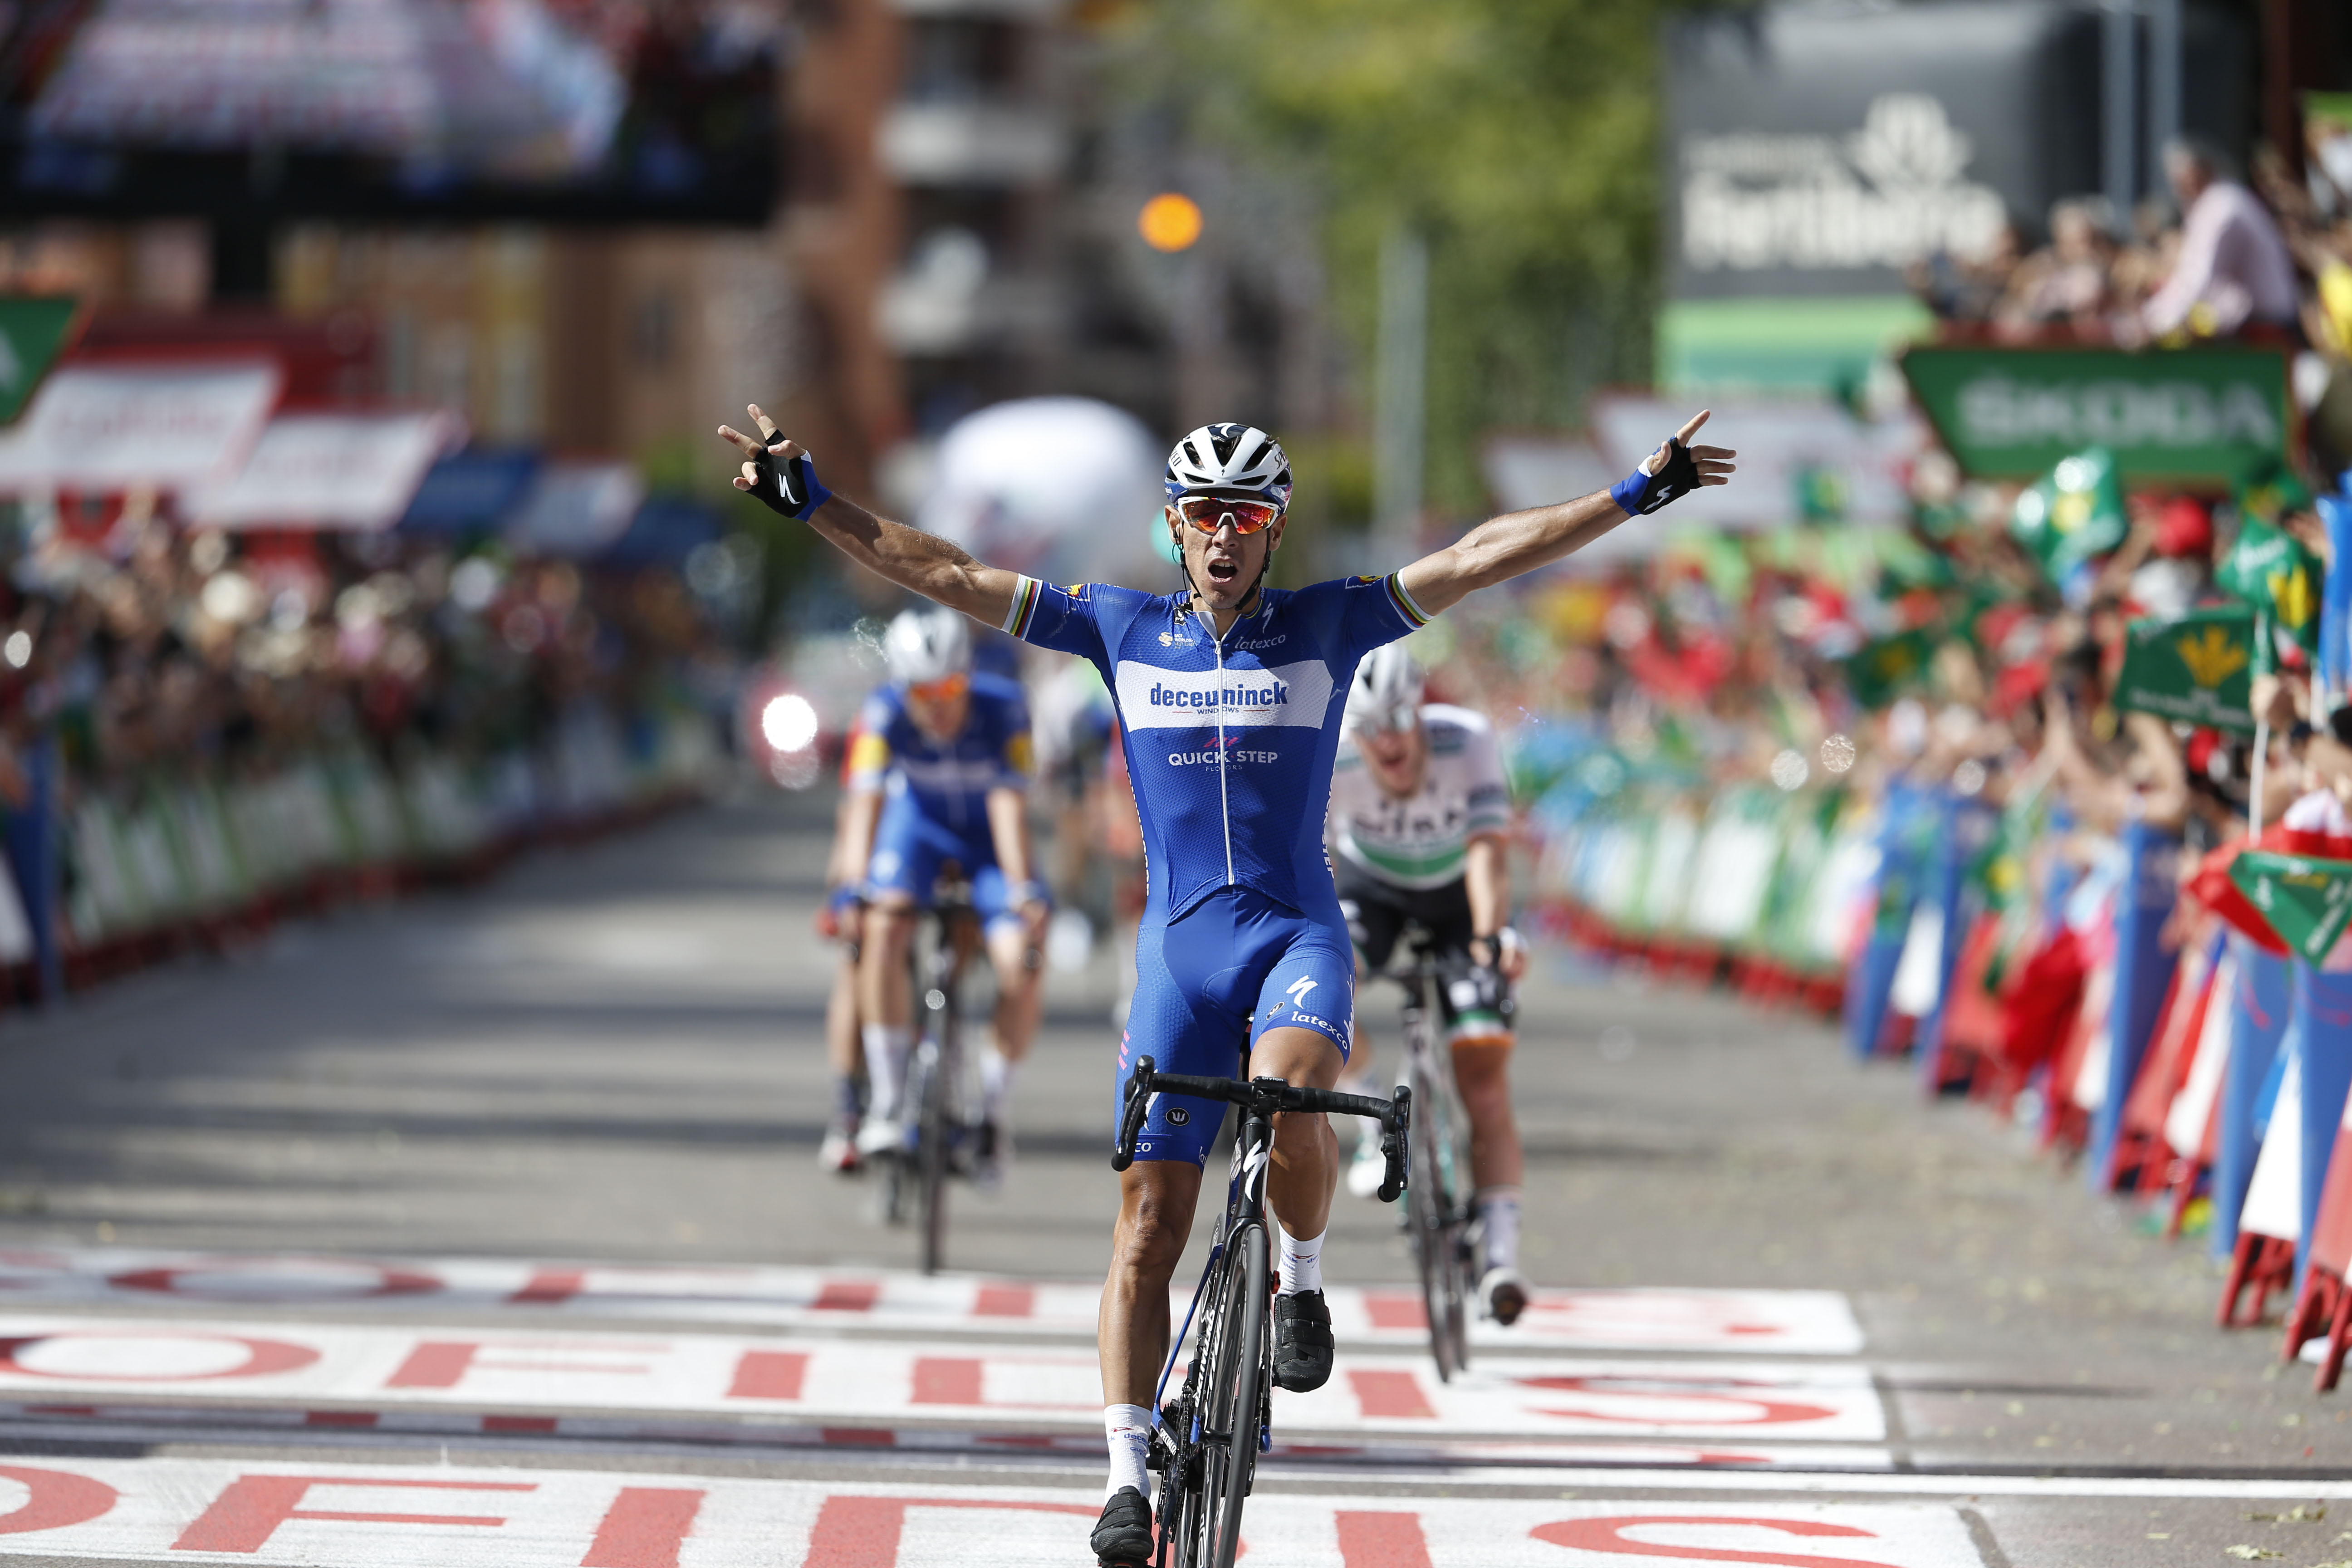 Philippe Gilbert wins Vuelta a España stage 17 as crosswinds disrupt general classification